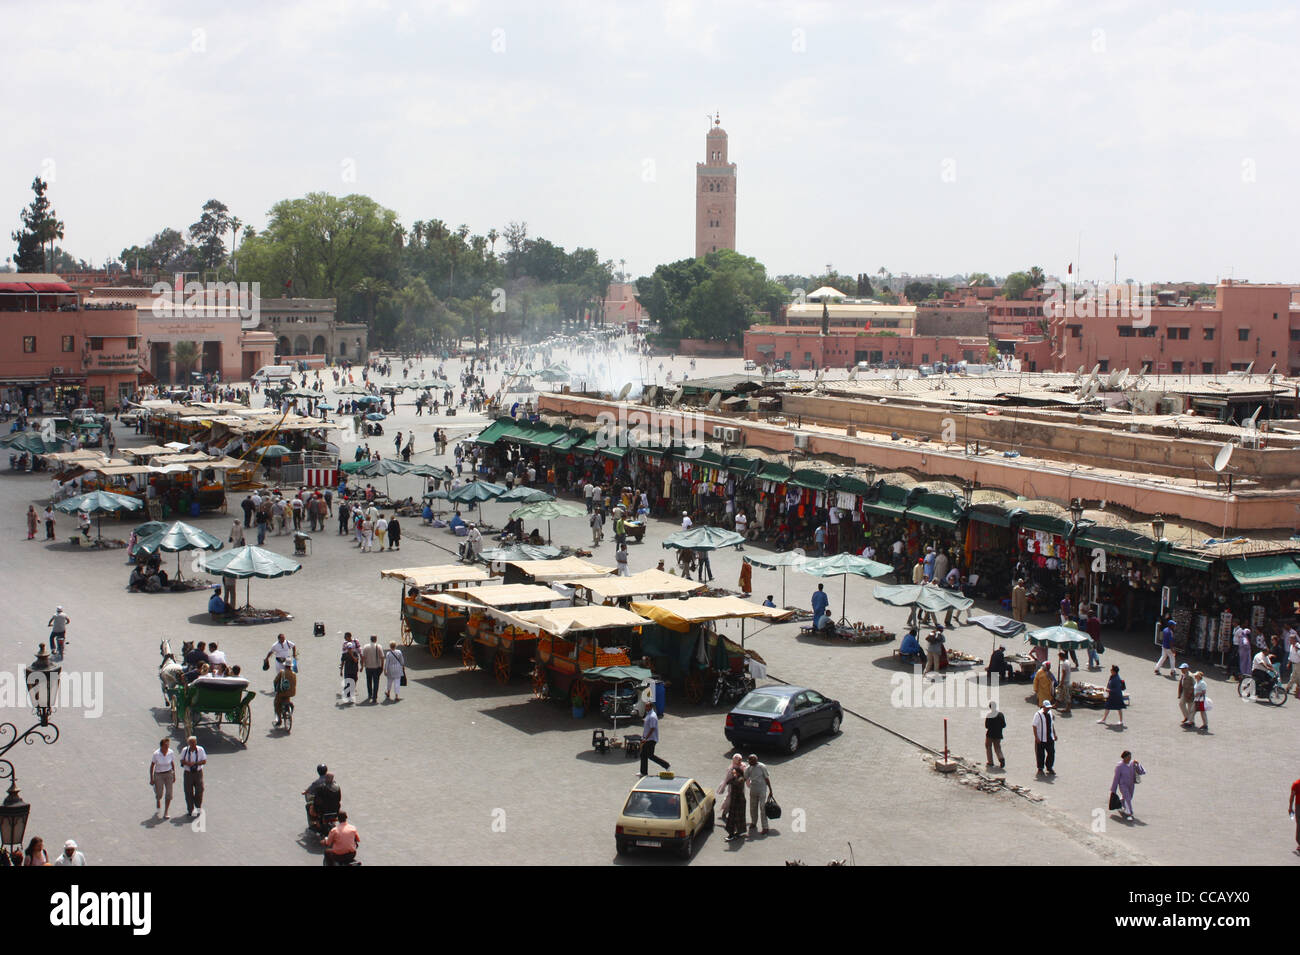 Djemaa el Fna square and market place in Marrakech with the Koutoubia in the background - Stock Image